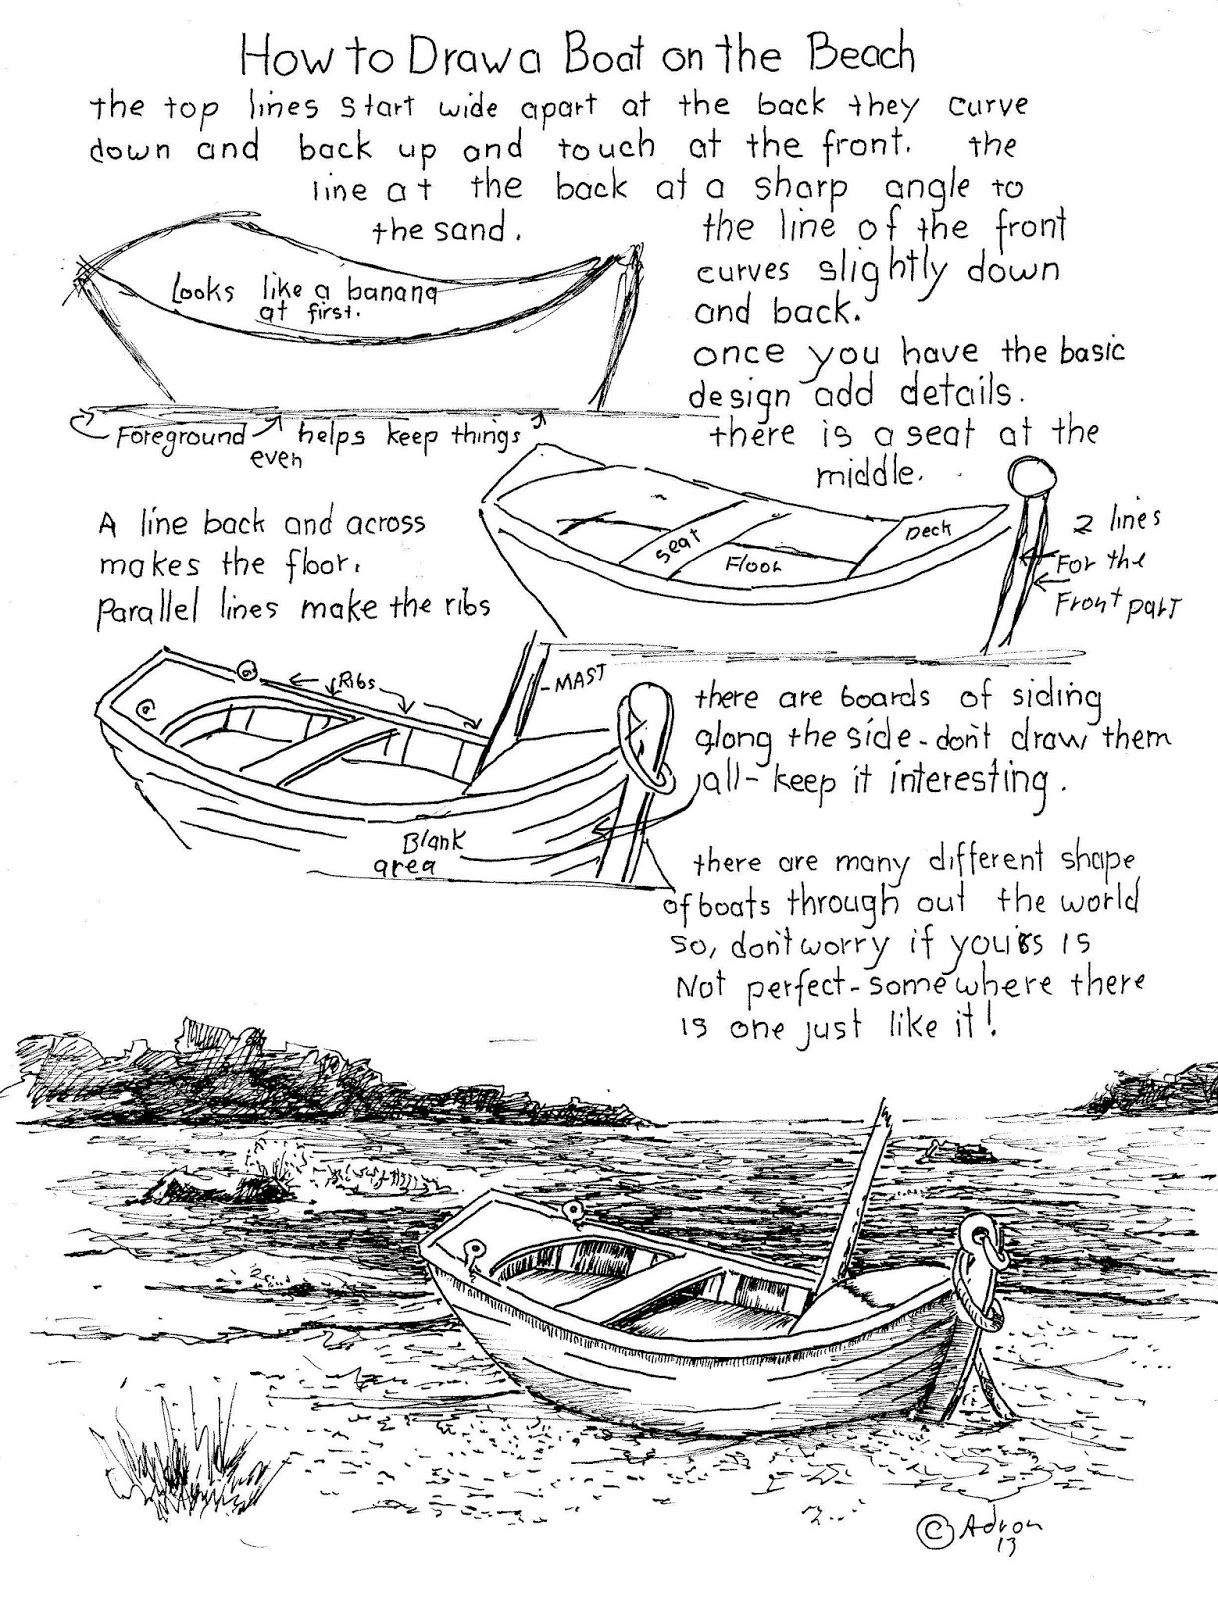 How To Draw A Boat On A Beach Printable Worsheet